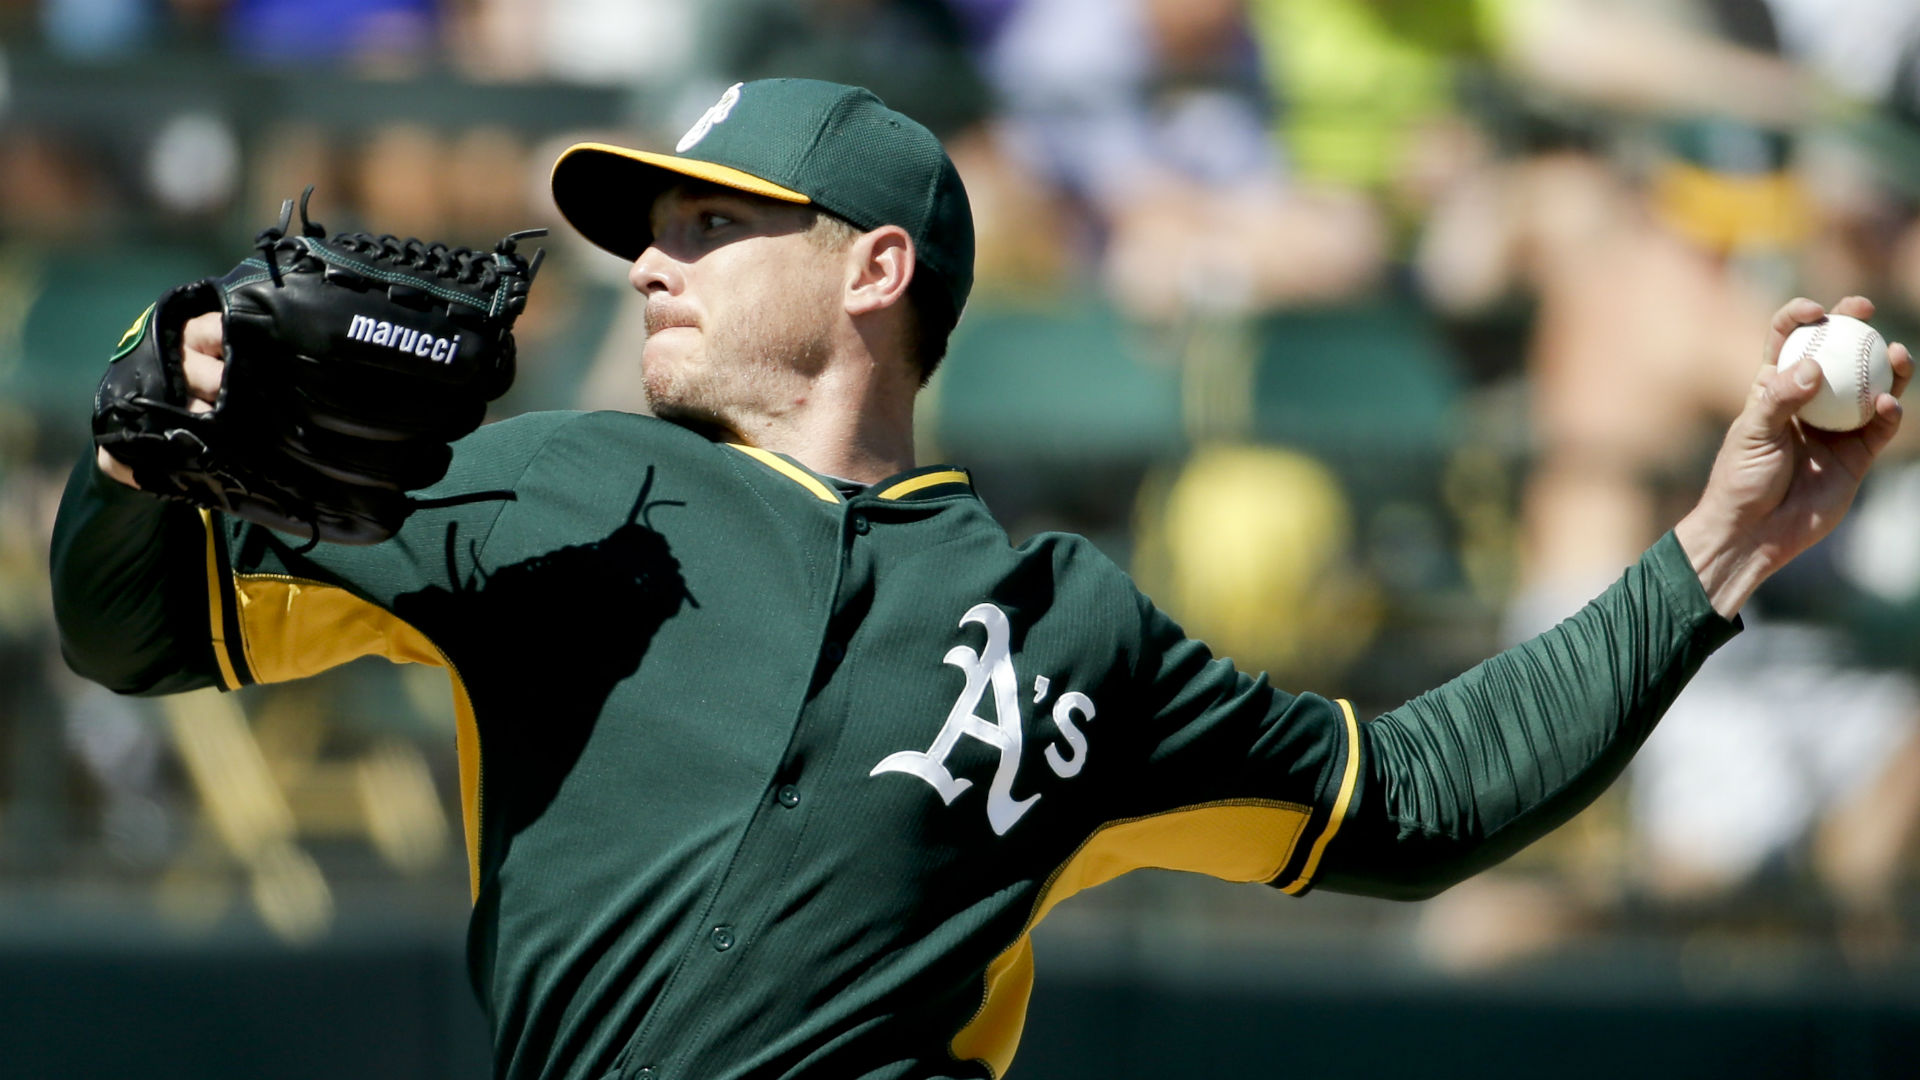 Fantasy baseball sleepers: Scott Kazmir among profitable arms